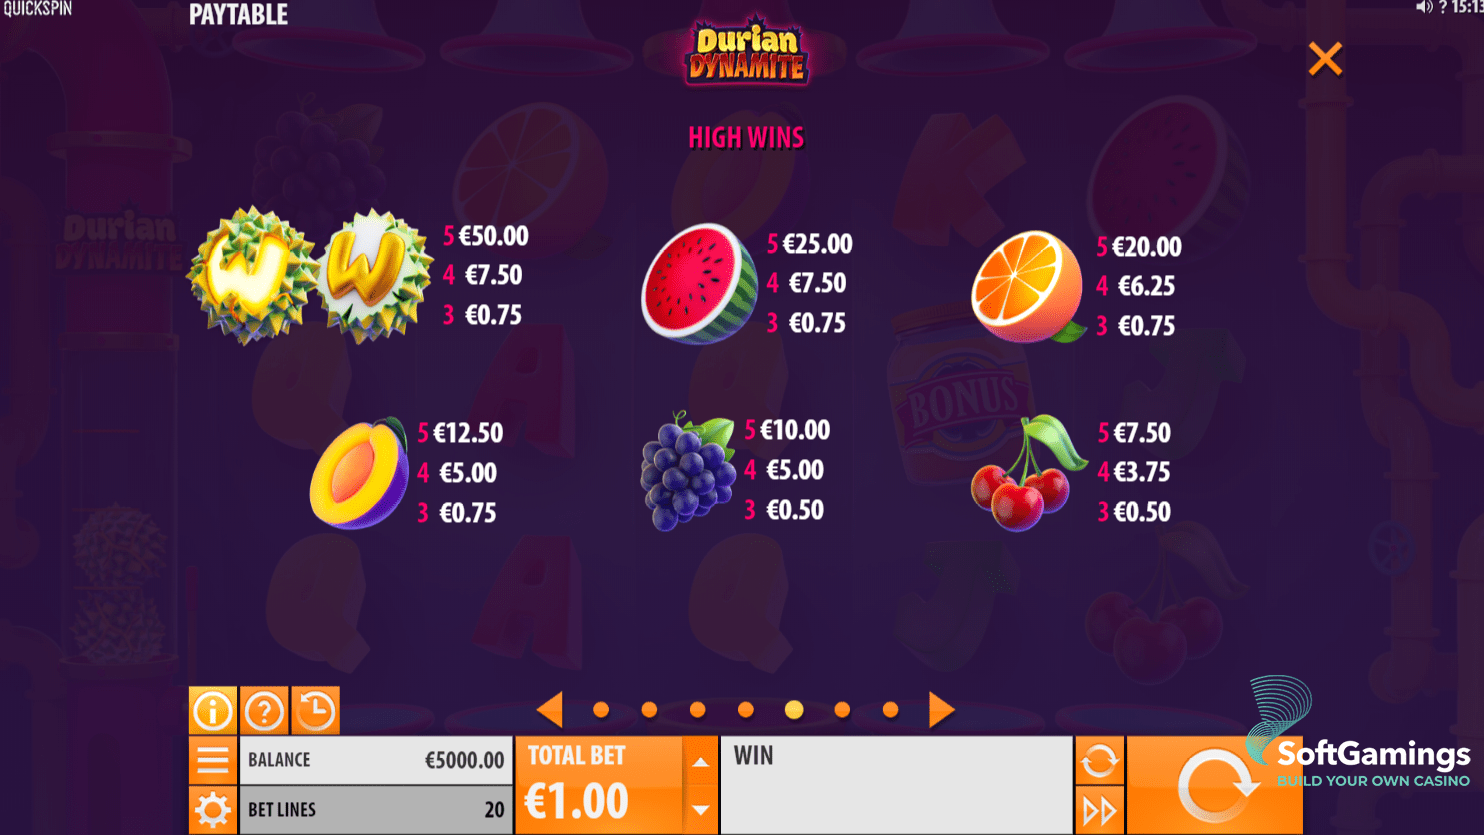 Durian Dynamite Slot Game Symbols and Winning Combinations